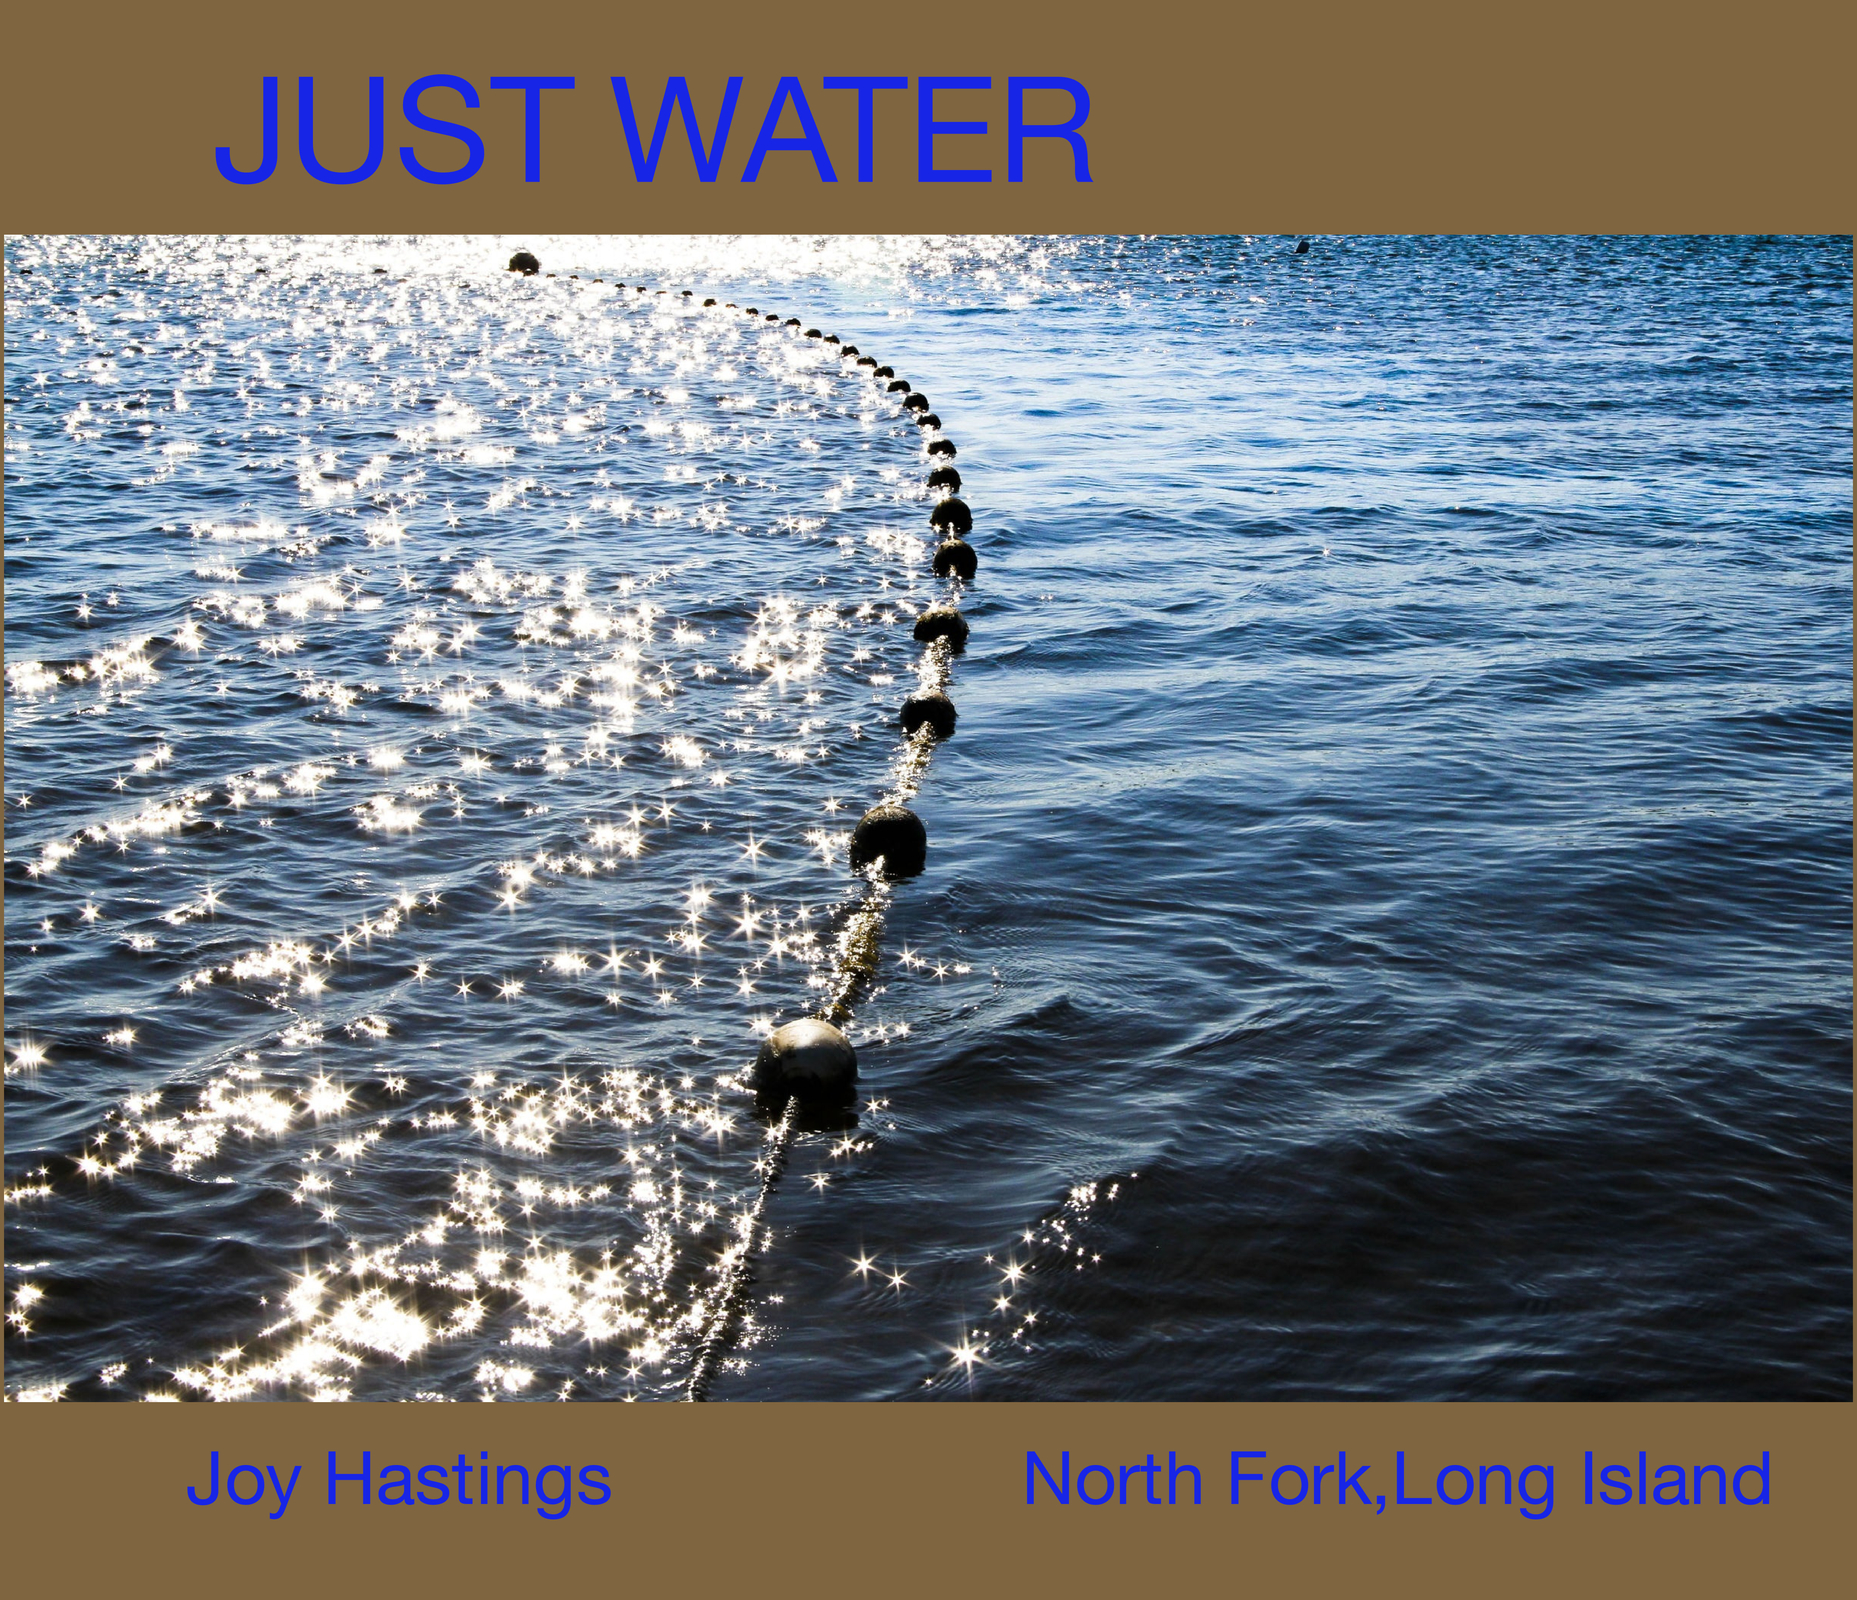 Editar Libros En Amazon Just Water Ebook De Joy Hastings Libros De Blurb España